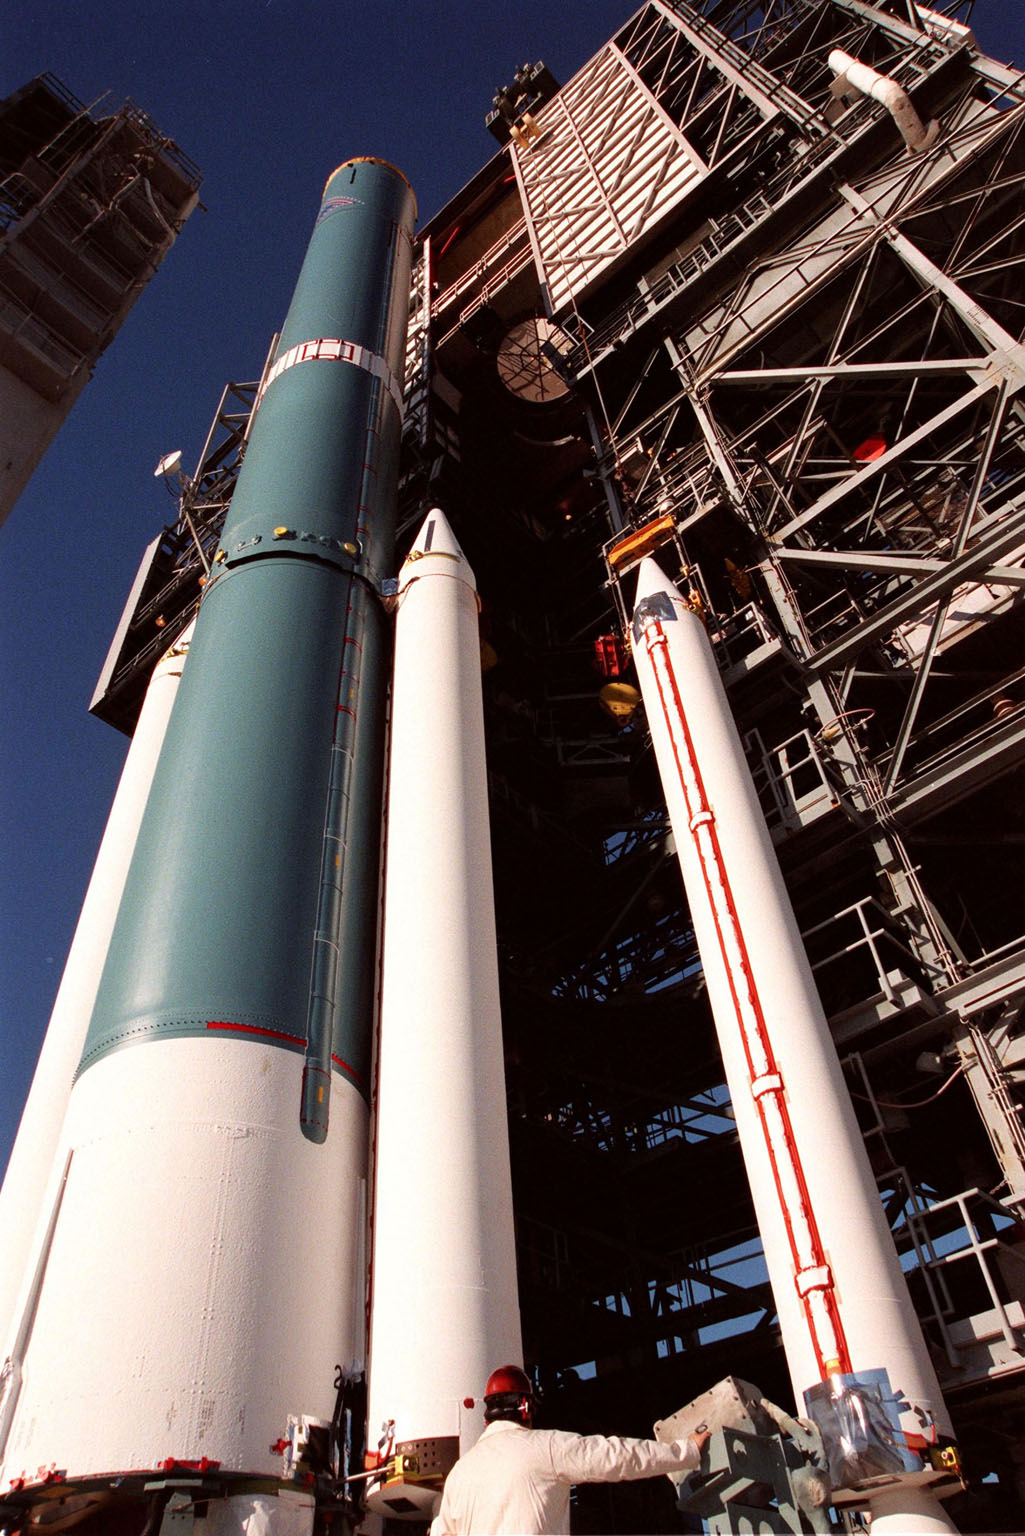 At Pad 17A, Cape Canaveral Air Station, a fourth and final solid rocket booster (SRB) (right) is moved from the mobile tower by a crane before mating with the Delta II rocket (left). The rocket will be aided by four SRBs to carry the Stardust satellite into space for a close encounter with the comet Wild 2 in January 2004. Using a medium called aerogel, Stardust will capture comet particles flying off the nucleus of the comet, plus collect interstellar dust for later analysis. The collected samples will return to Earth in a Sample Return Capsule to be jettisoned as Stardust swings by Earth in January 2006. Stardust is scheduled to be launched on Feb. 6, 1999